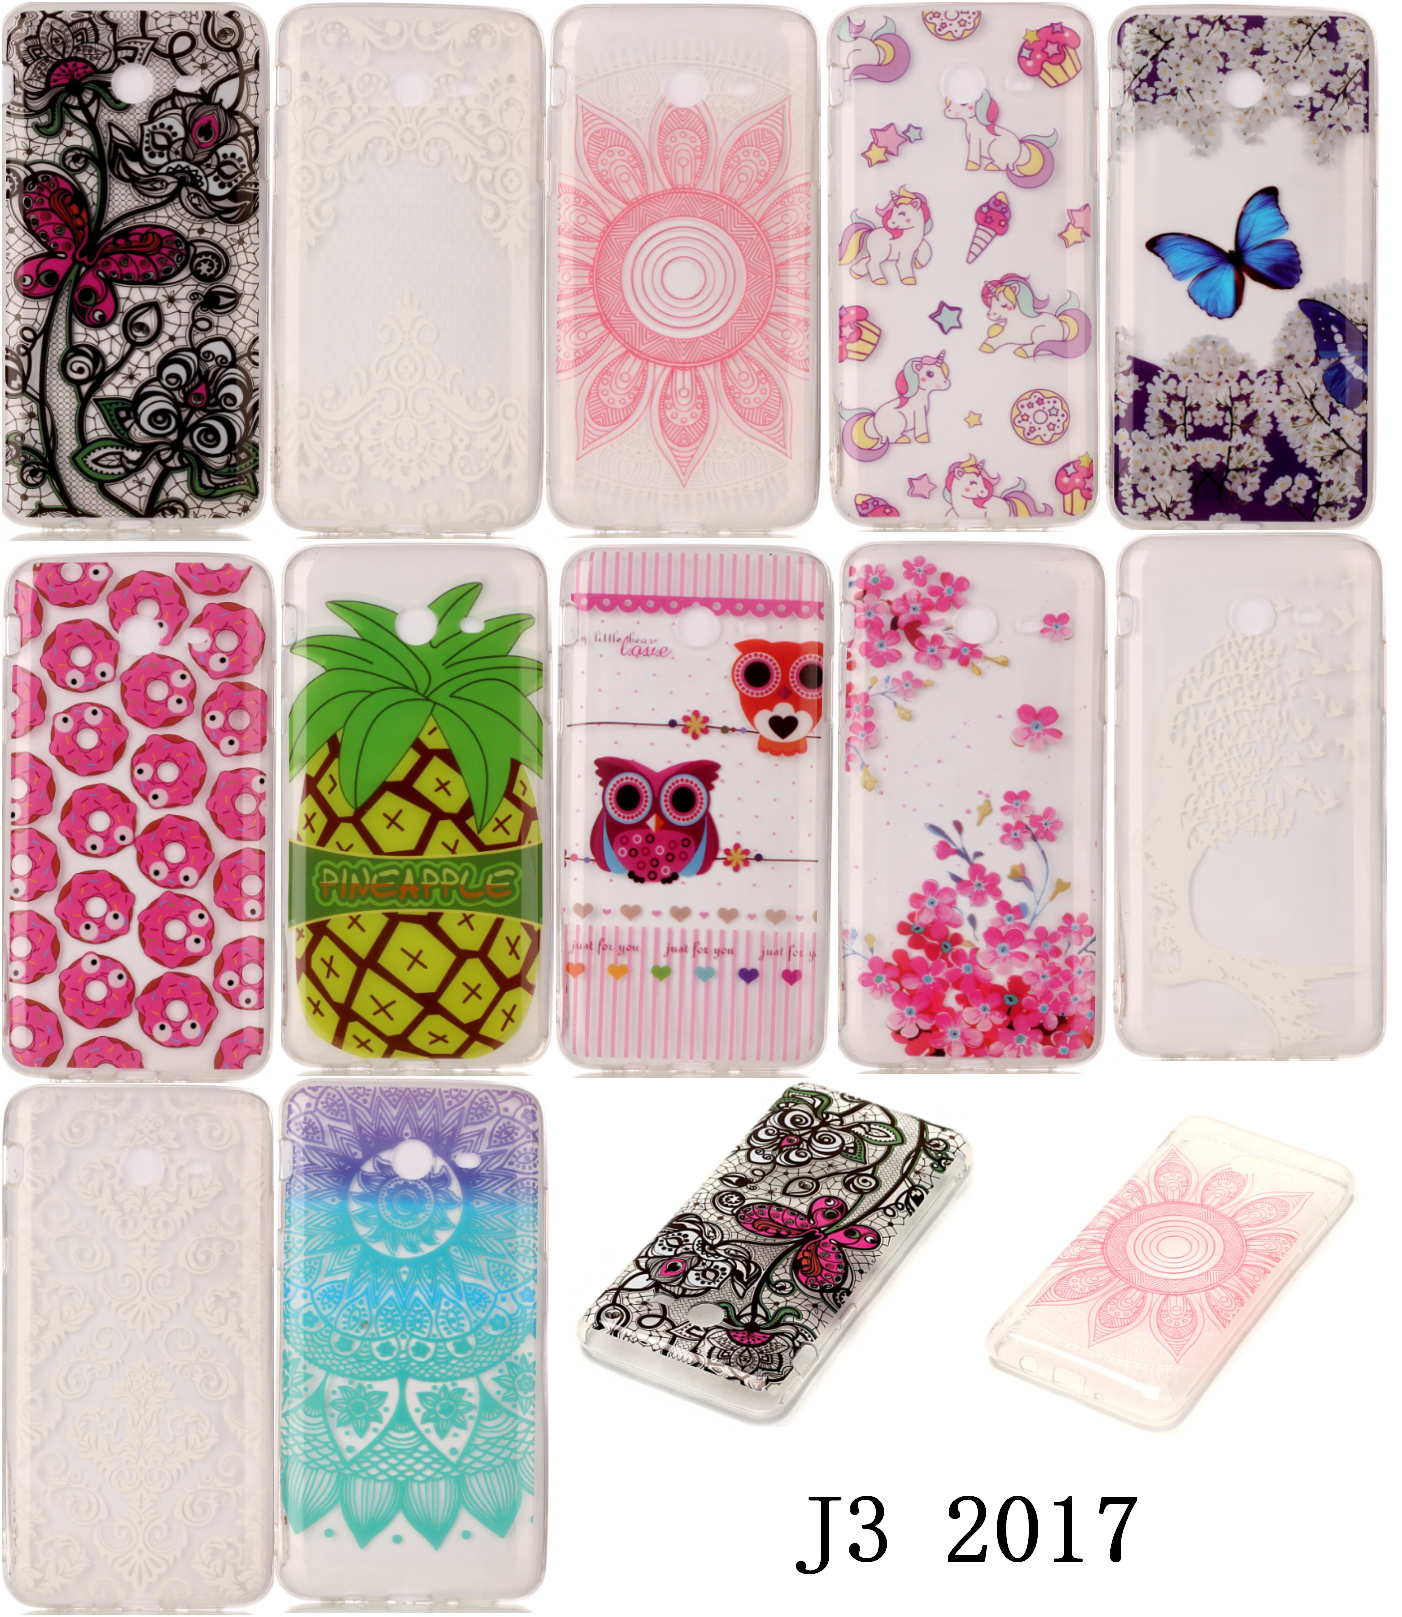 New Pretty Cheap Soft Silicone TPU Thin Ultra Carcasa Etui Fundas Case Phone Mobile For Samsug Samsu Sansung Galaxy J3 2017